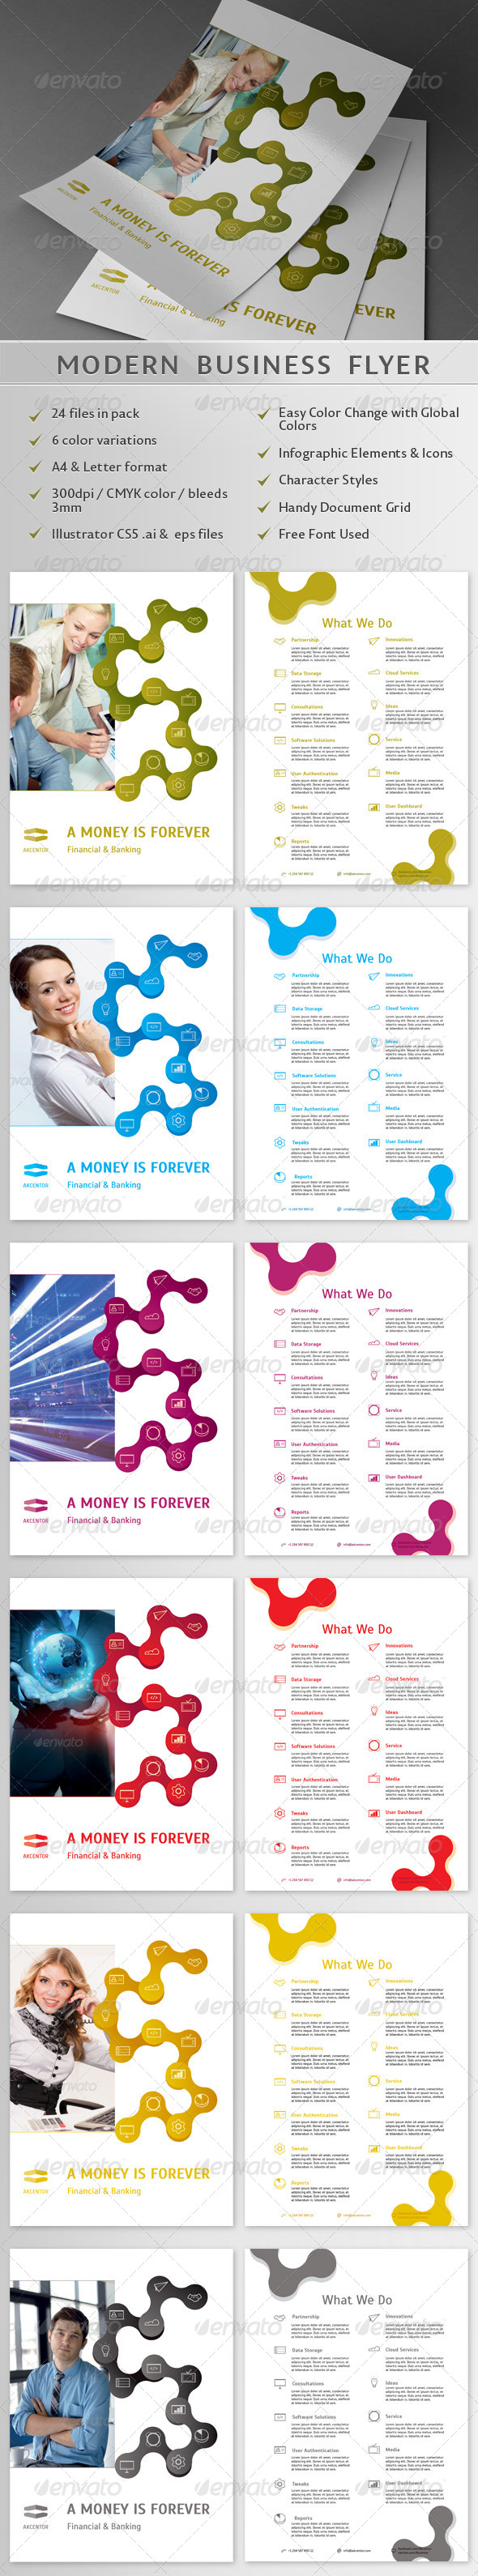 Modern Business Flyer 02 - Corporate Flyers